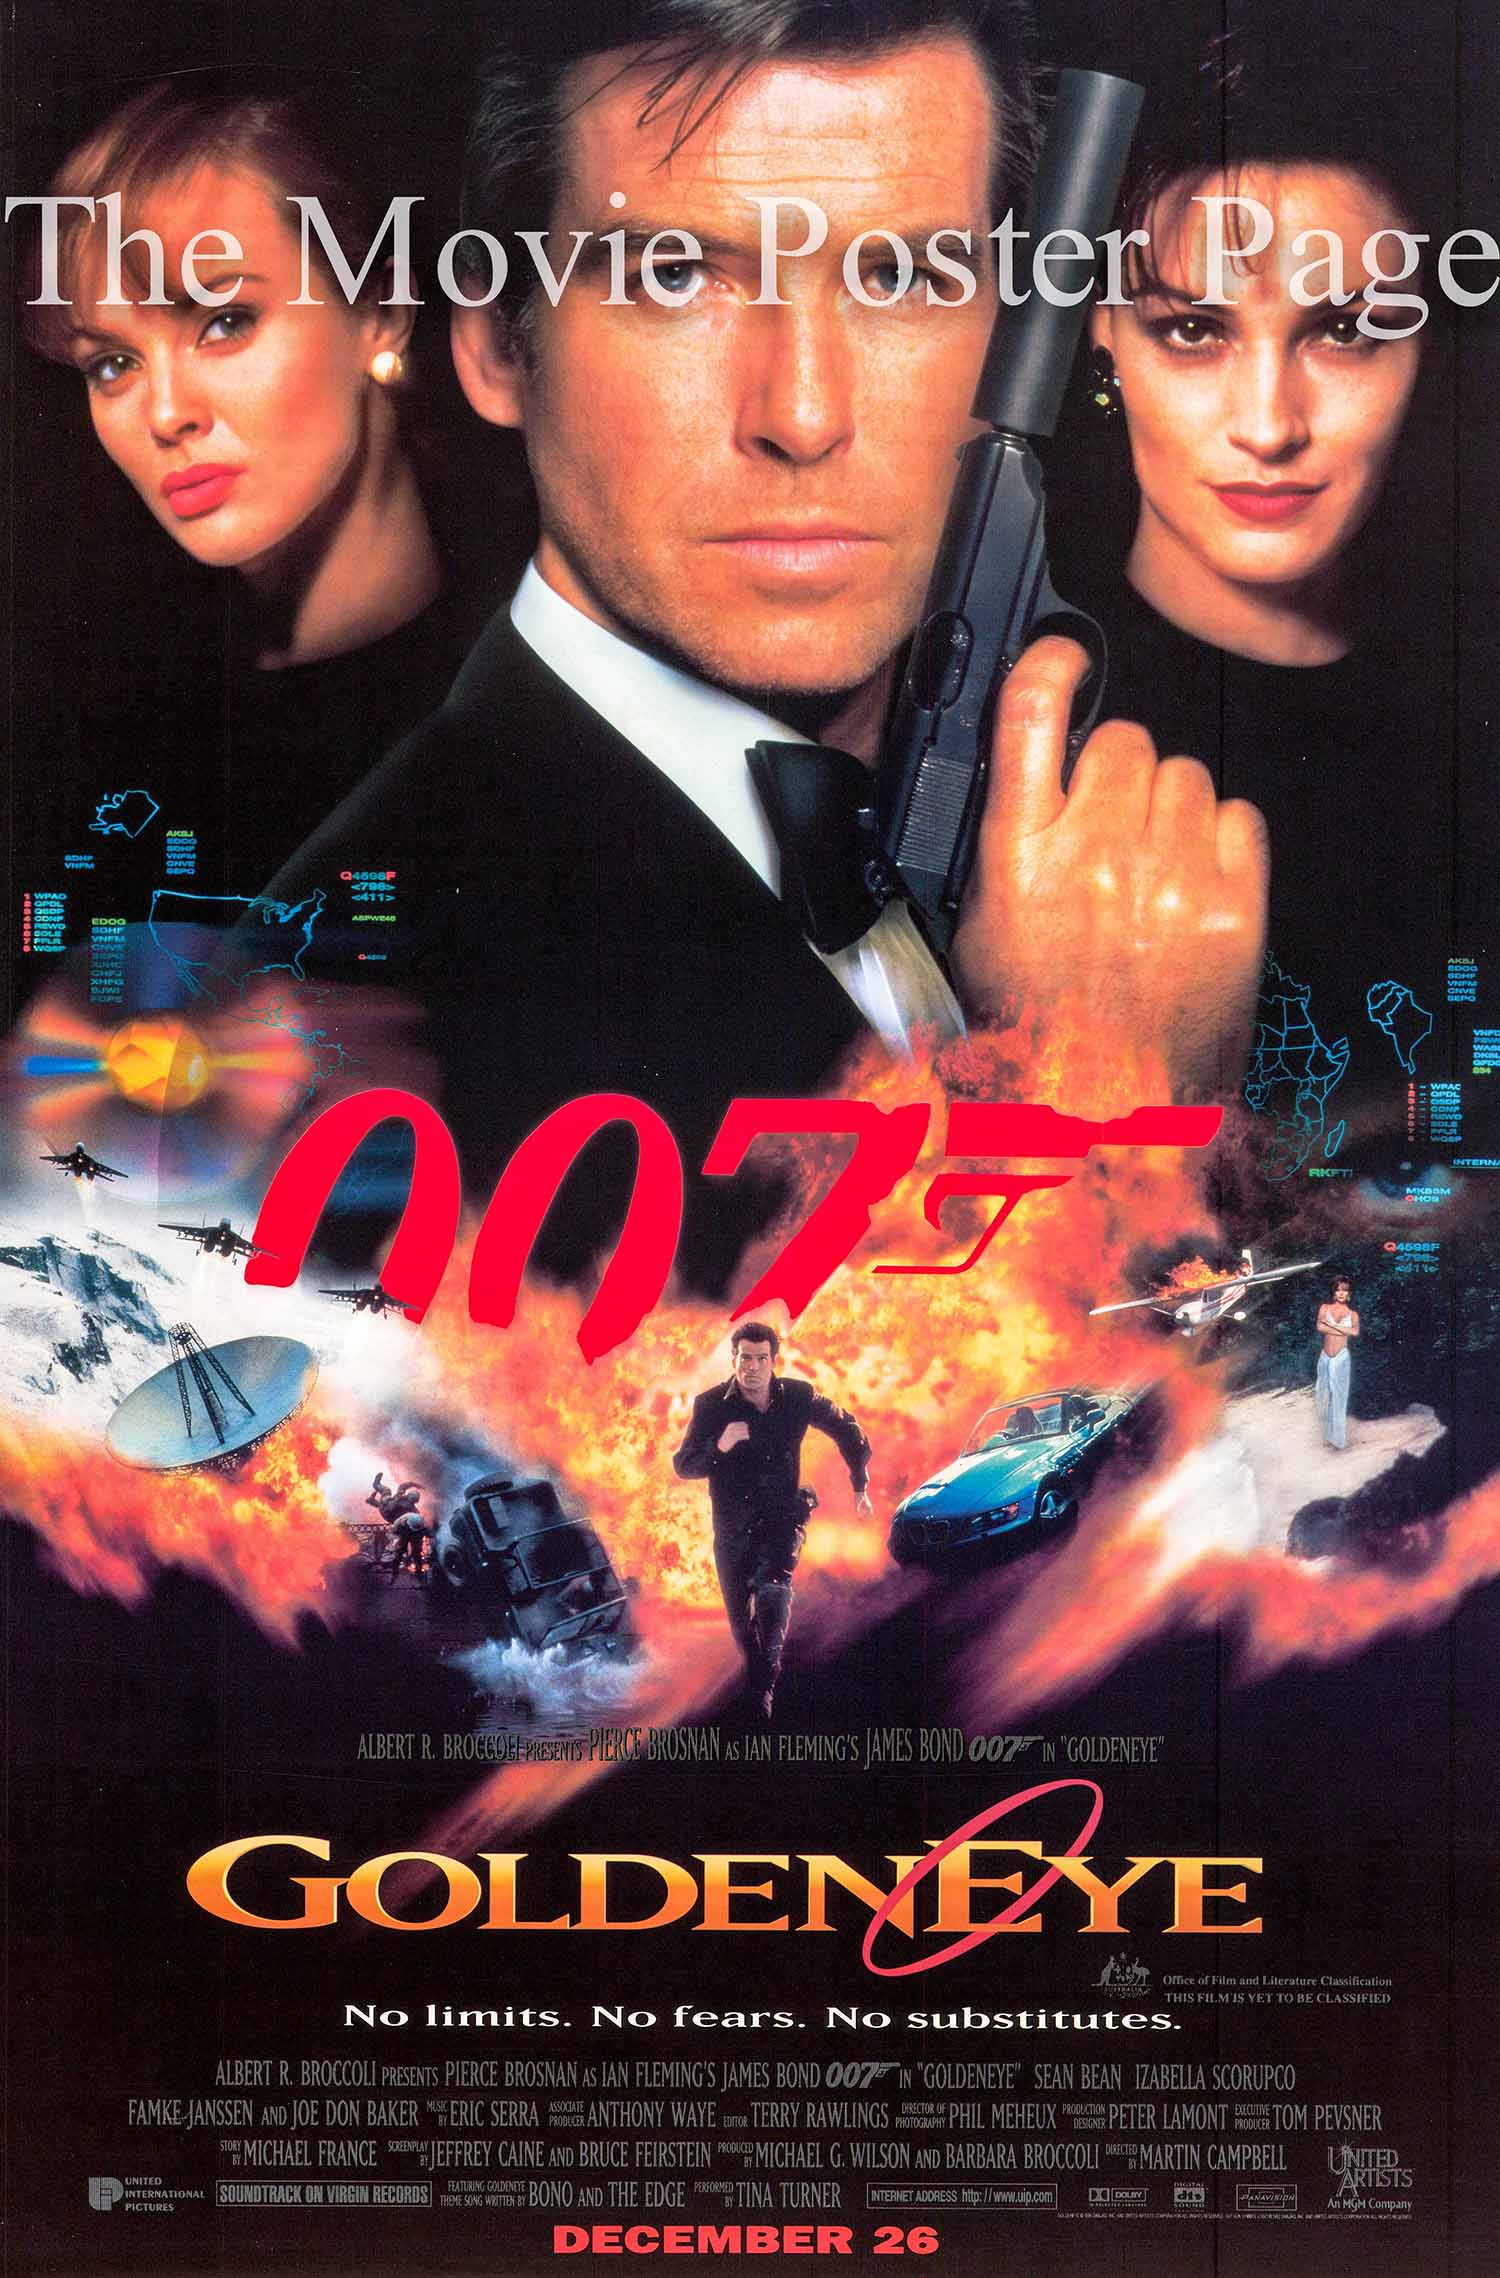 Pictured is a US advance promotional poster for the 1995 Martin Campbell film Goldeneye starring Pierce Brosna